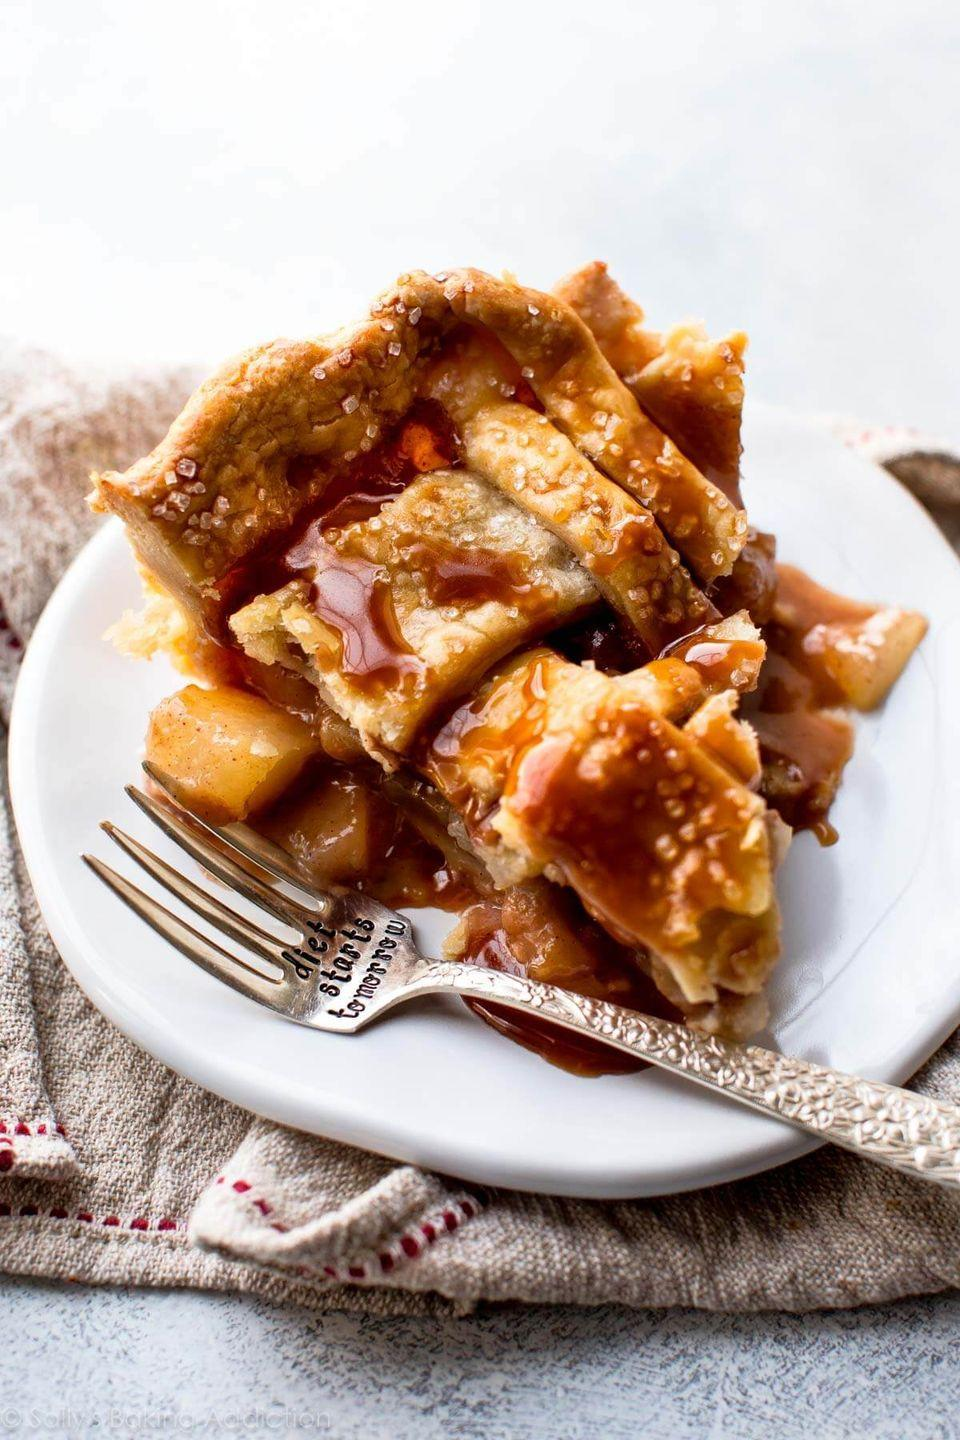 """<p>A homemade caramel sauce makes this treat sinfully sweet, but the cinnamon balances it out with some spice.</p><p><strong>Get the recipe at <a href=""""https://sallysbakingaddiction.com/caramel-pear-pie/"""" rel=""""nofollow noopener"""" target=""""_blank"""" data-ylk=""""slk:Sally's Baking Addiction"""" class=""""link rapid-noclick-resp"""">Sally's Baking Addiction</a>.</strong> </p>"""